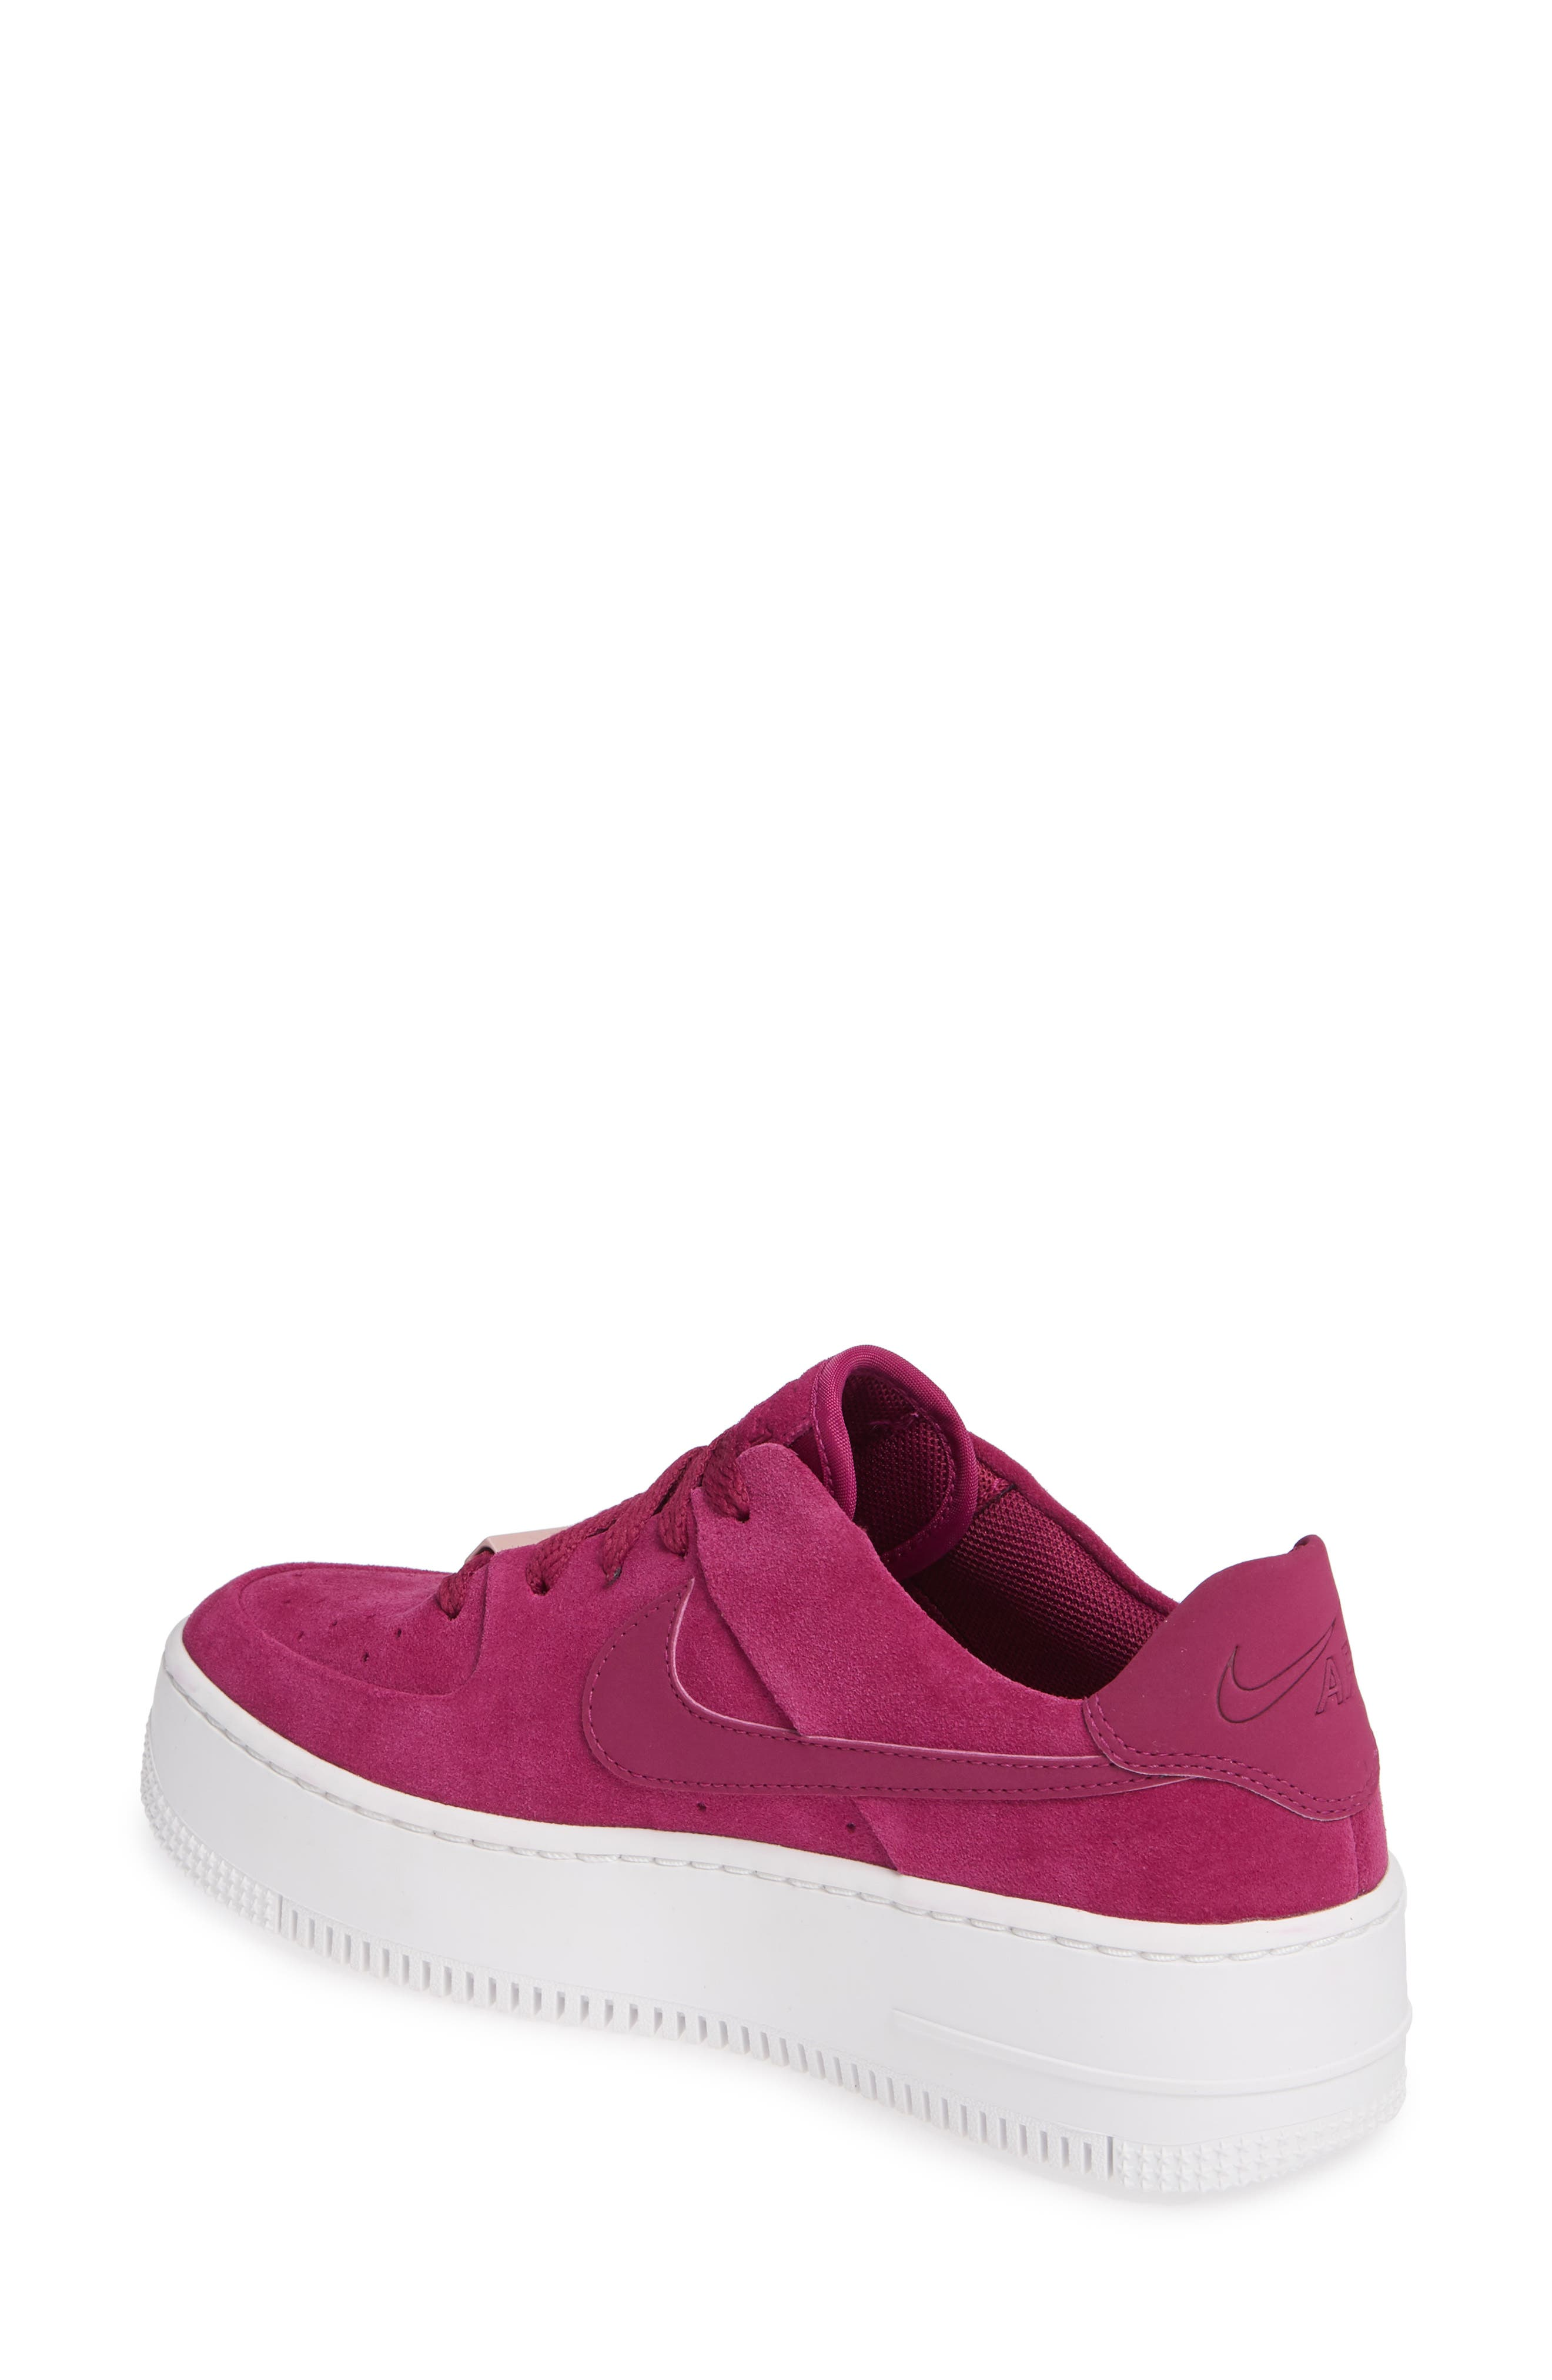 NIKE,                             Air Force 1 Sage Low Platform Sneaker,                             Alternate thumbnail 2, color,                             TRUE BERRY/ PLUM CHALK